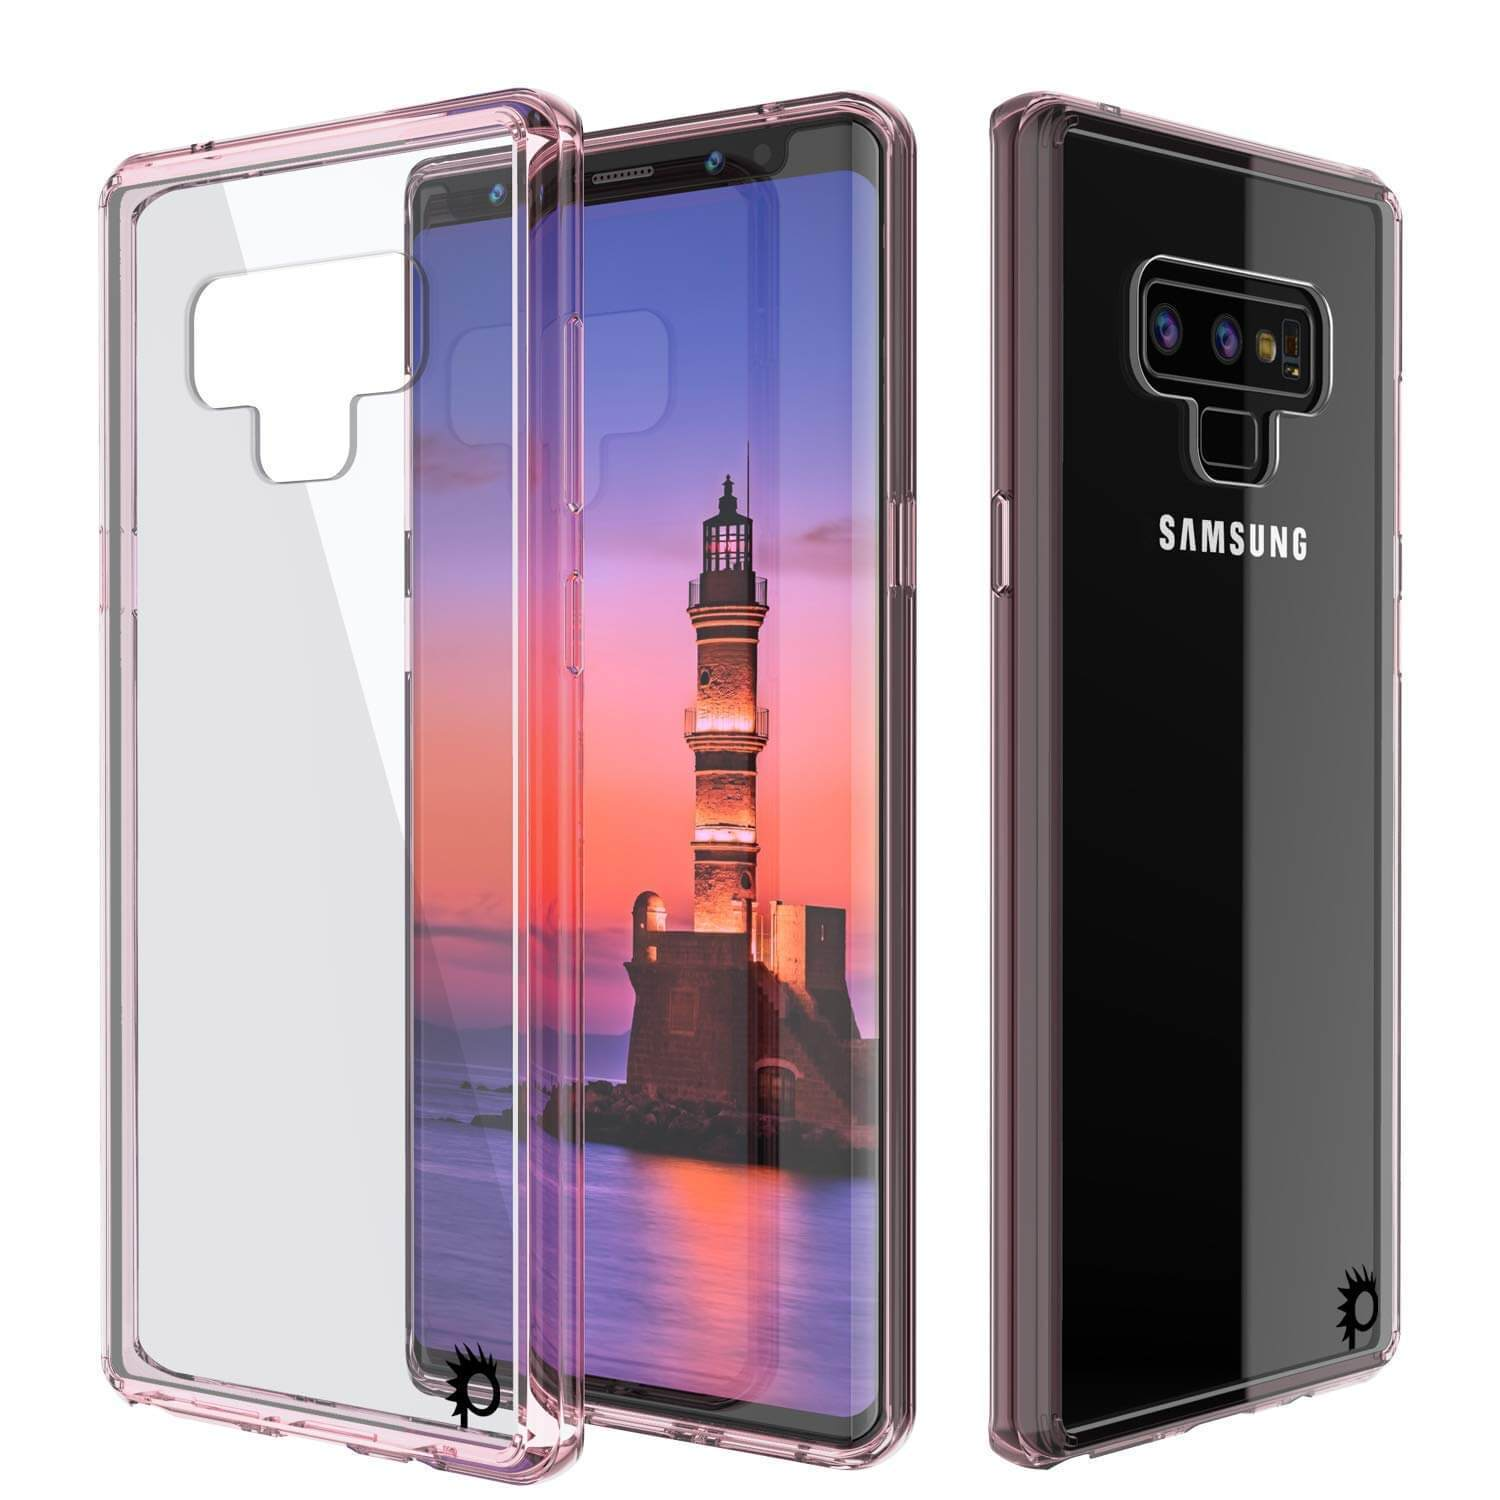 Galaxy Note 9 Case, Punkcase Lucid-2.0 Series Slim Fit Armor Crystal Pink Cover